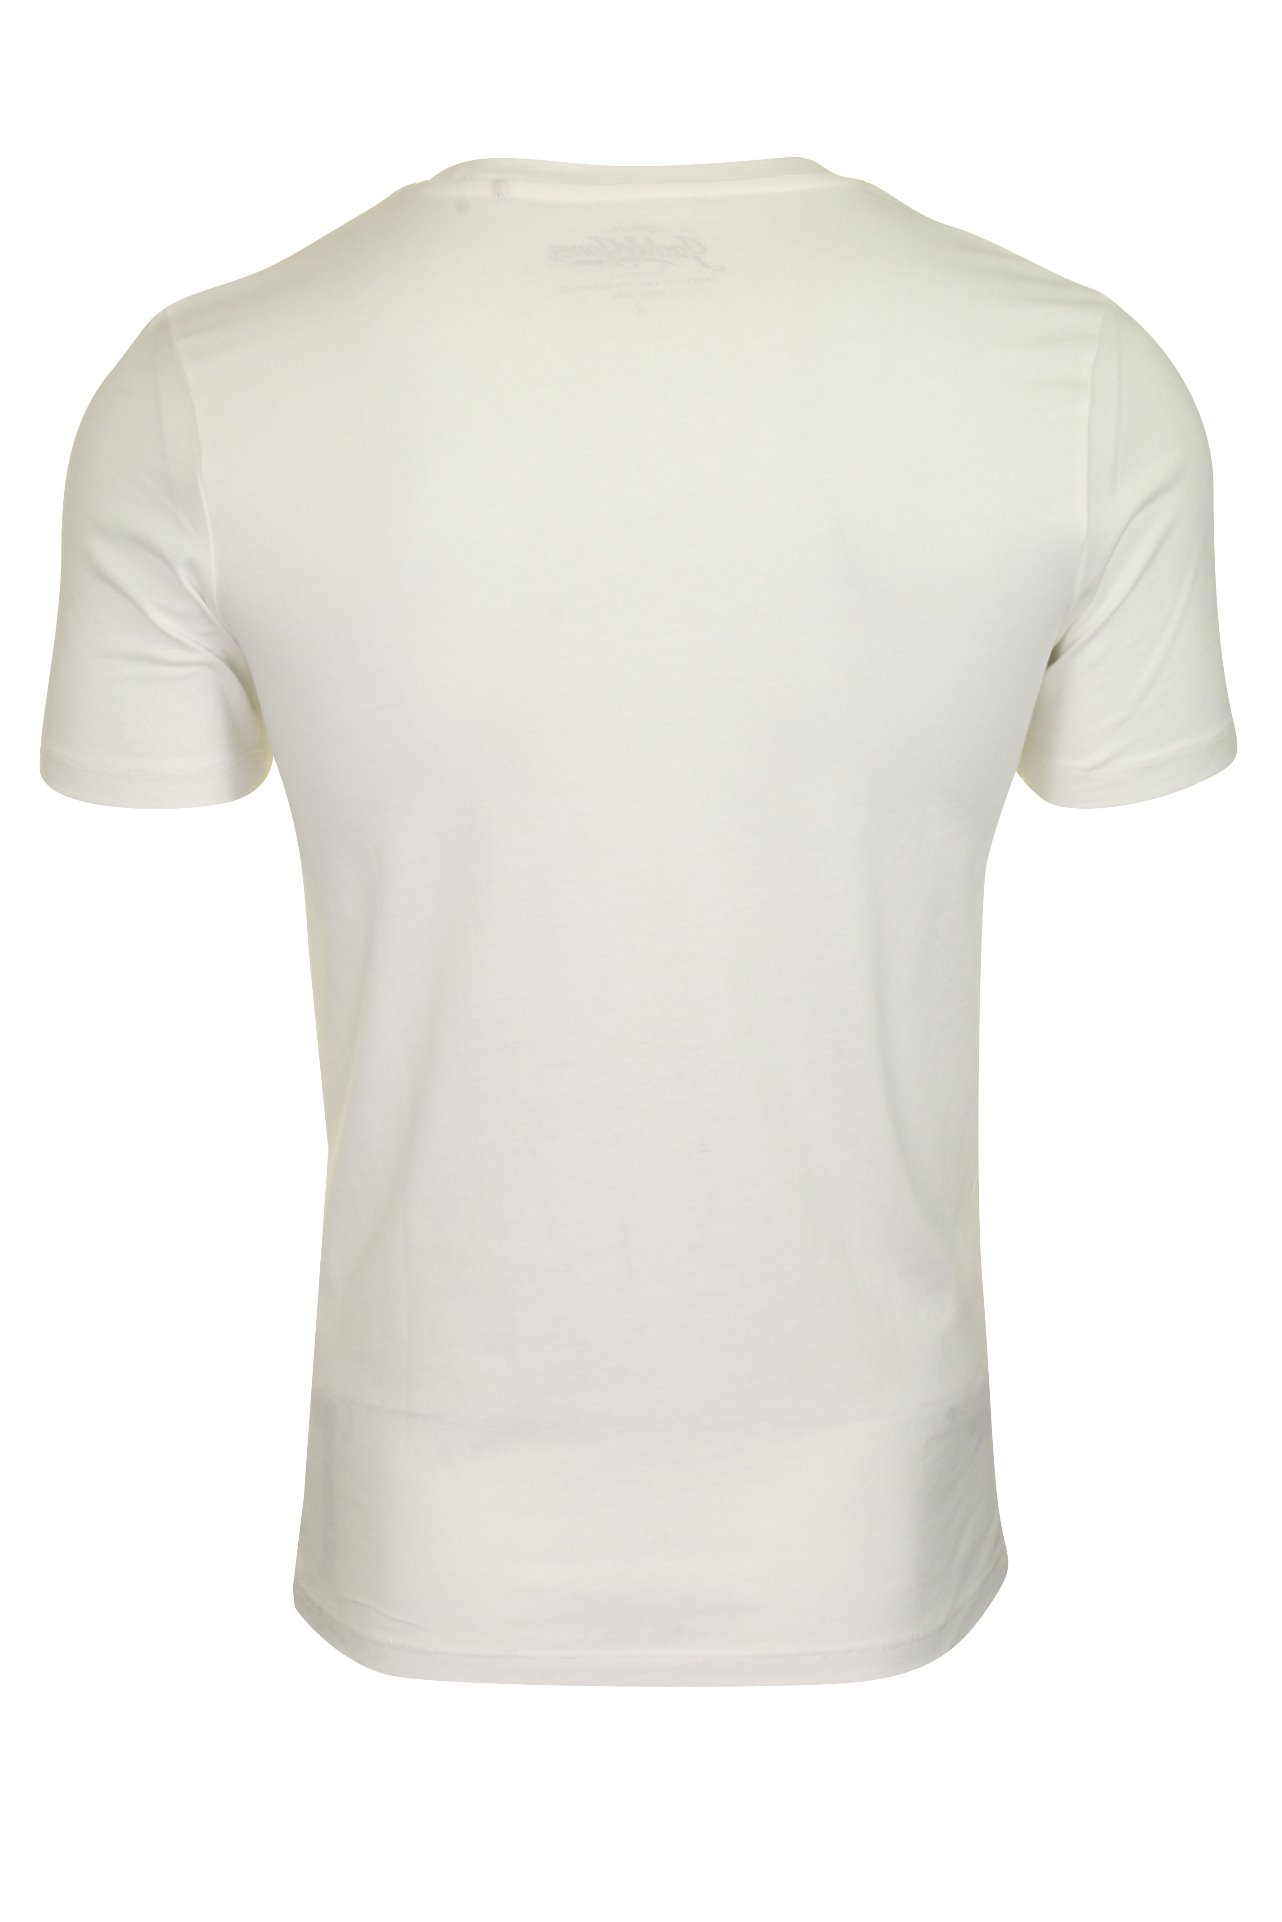 Jack-amp-Jones-Mens-Short-Sleeved-T-Shirt-039-JJEJEANS-039 thumbnail 8